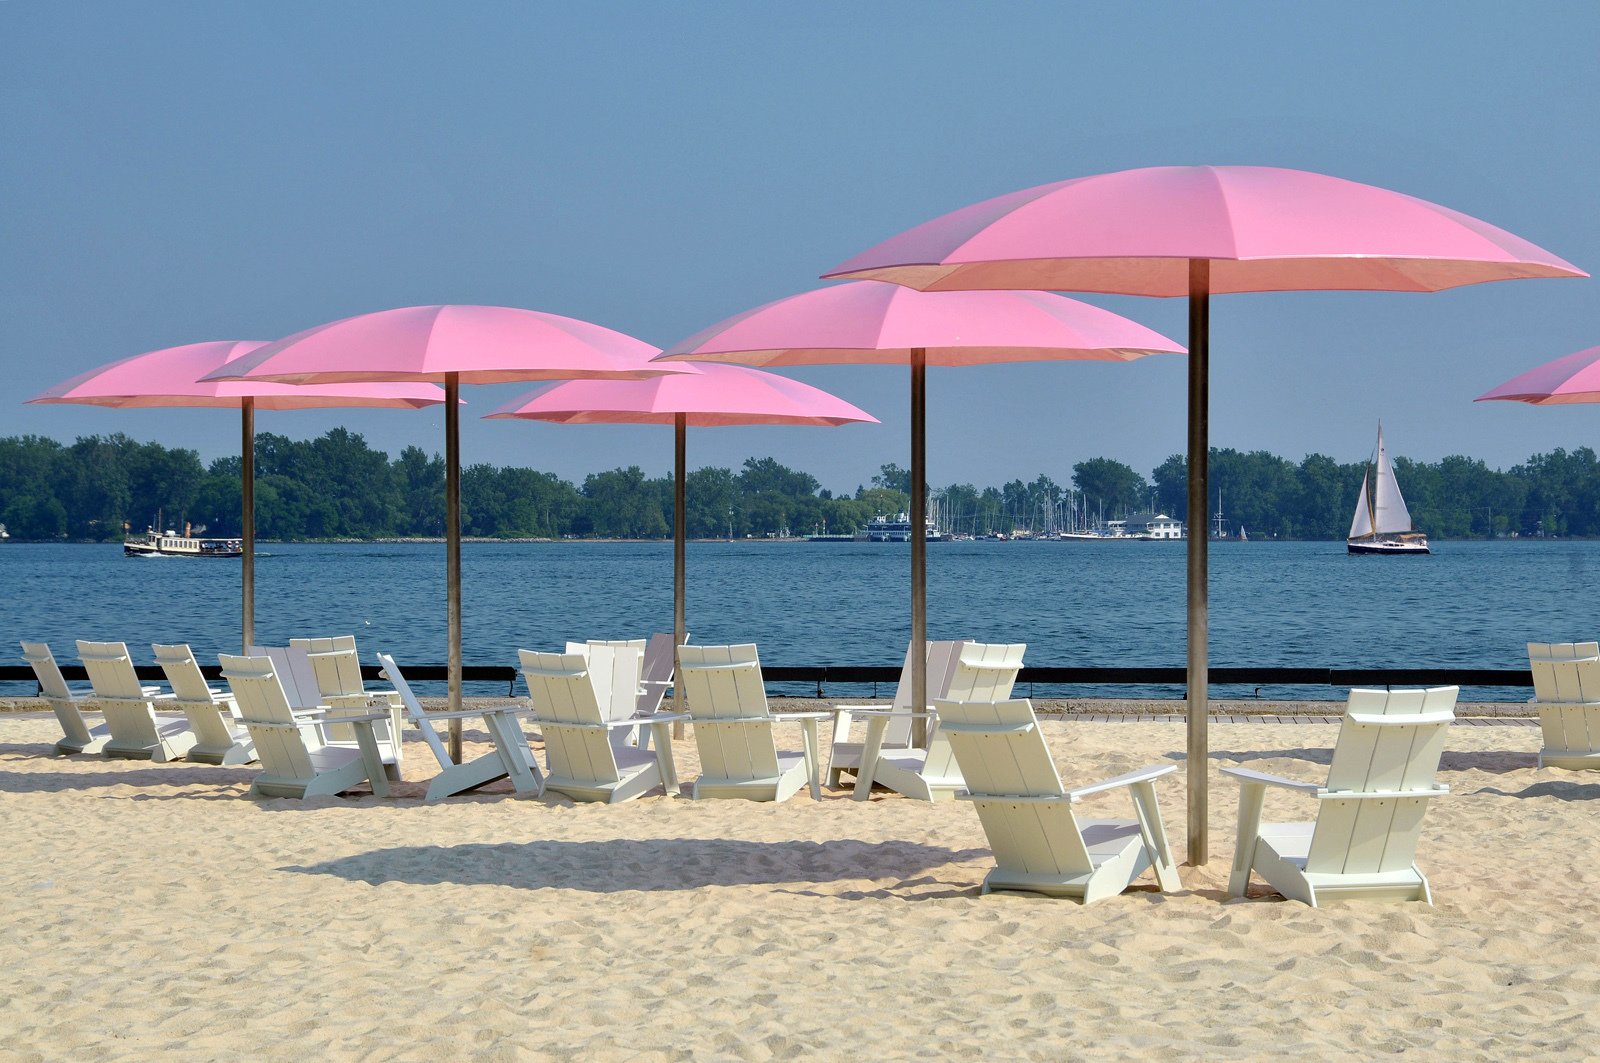 Pink Umbrellas by Claude Cormier  Canada's Sugar Beach, located in downtown Toronto, offers a whimsical way to experience sand and water in an urban environment. To ratchet up the fun, Montreal designer Claude Cormier dreamed up these pink umbrellas to shade visitors in an area also featuring a colorful fountain display. The hues at Sugar Beach fit the name and contrasts the downtown core.  Photos from Street Furniture Your City Wishes it Had